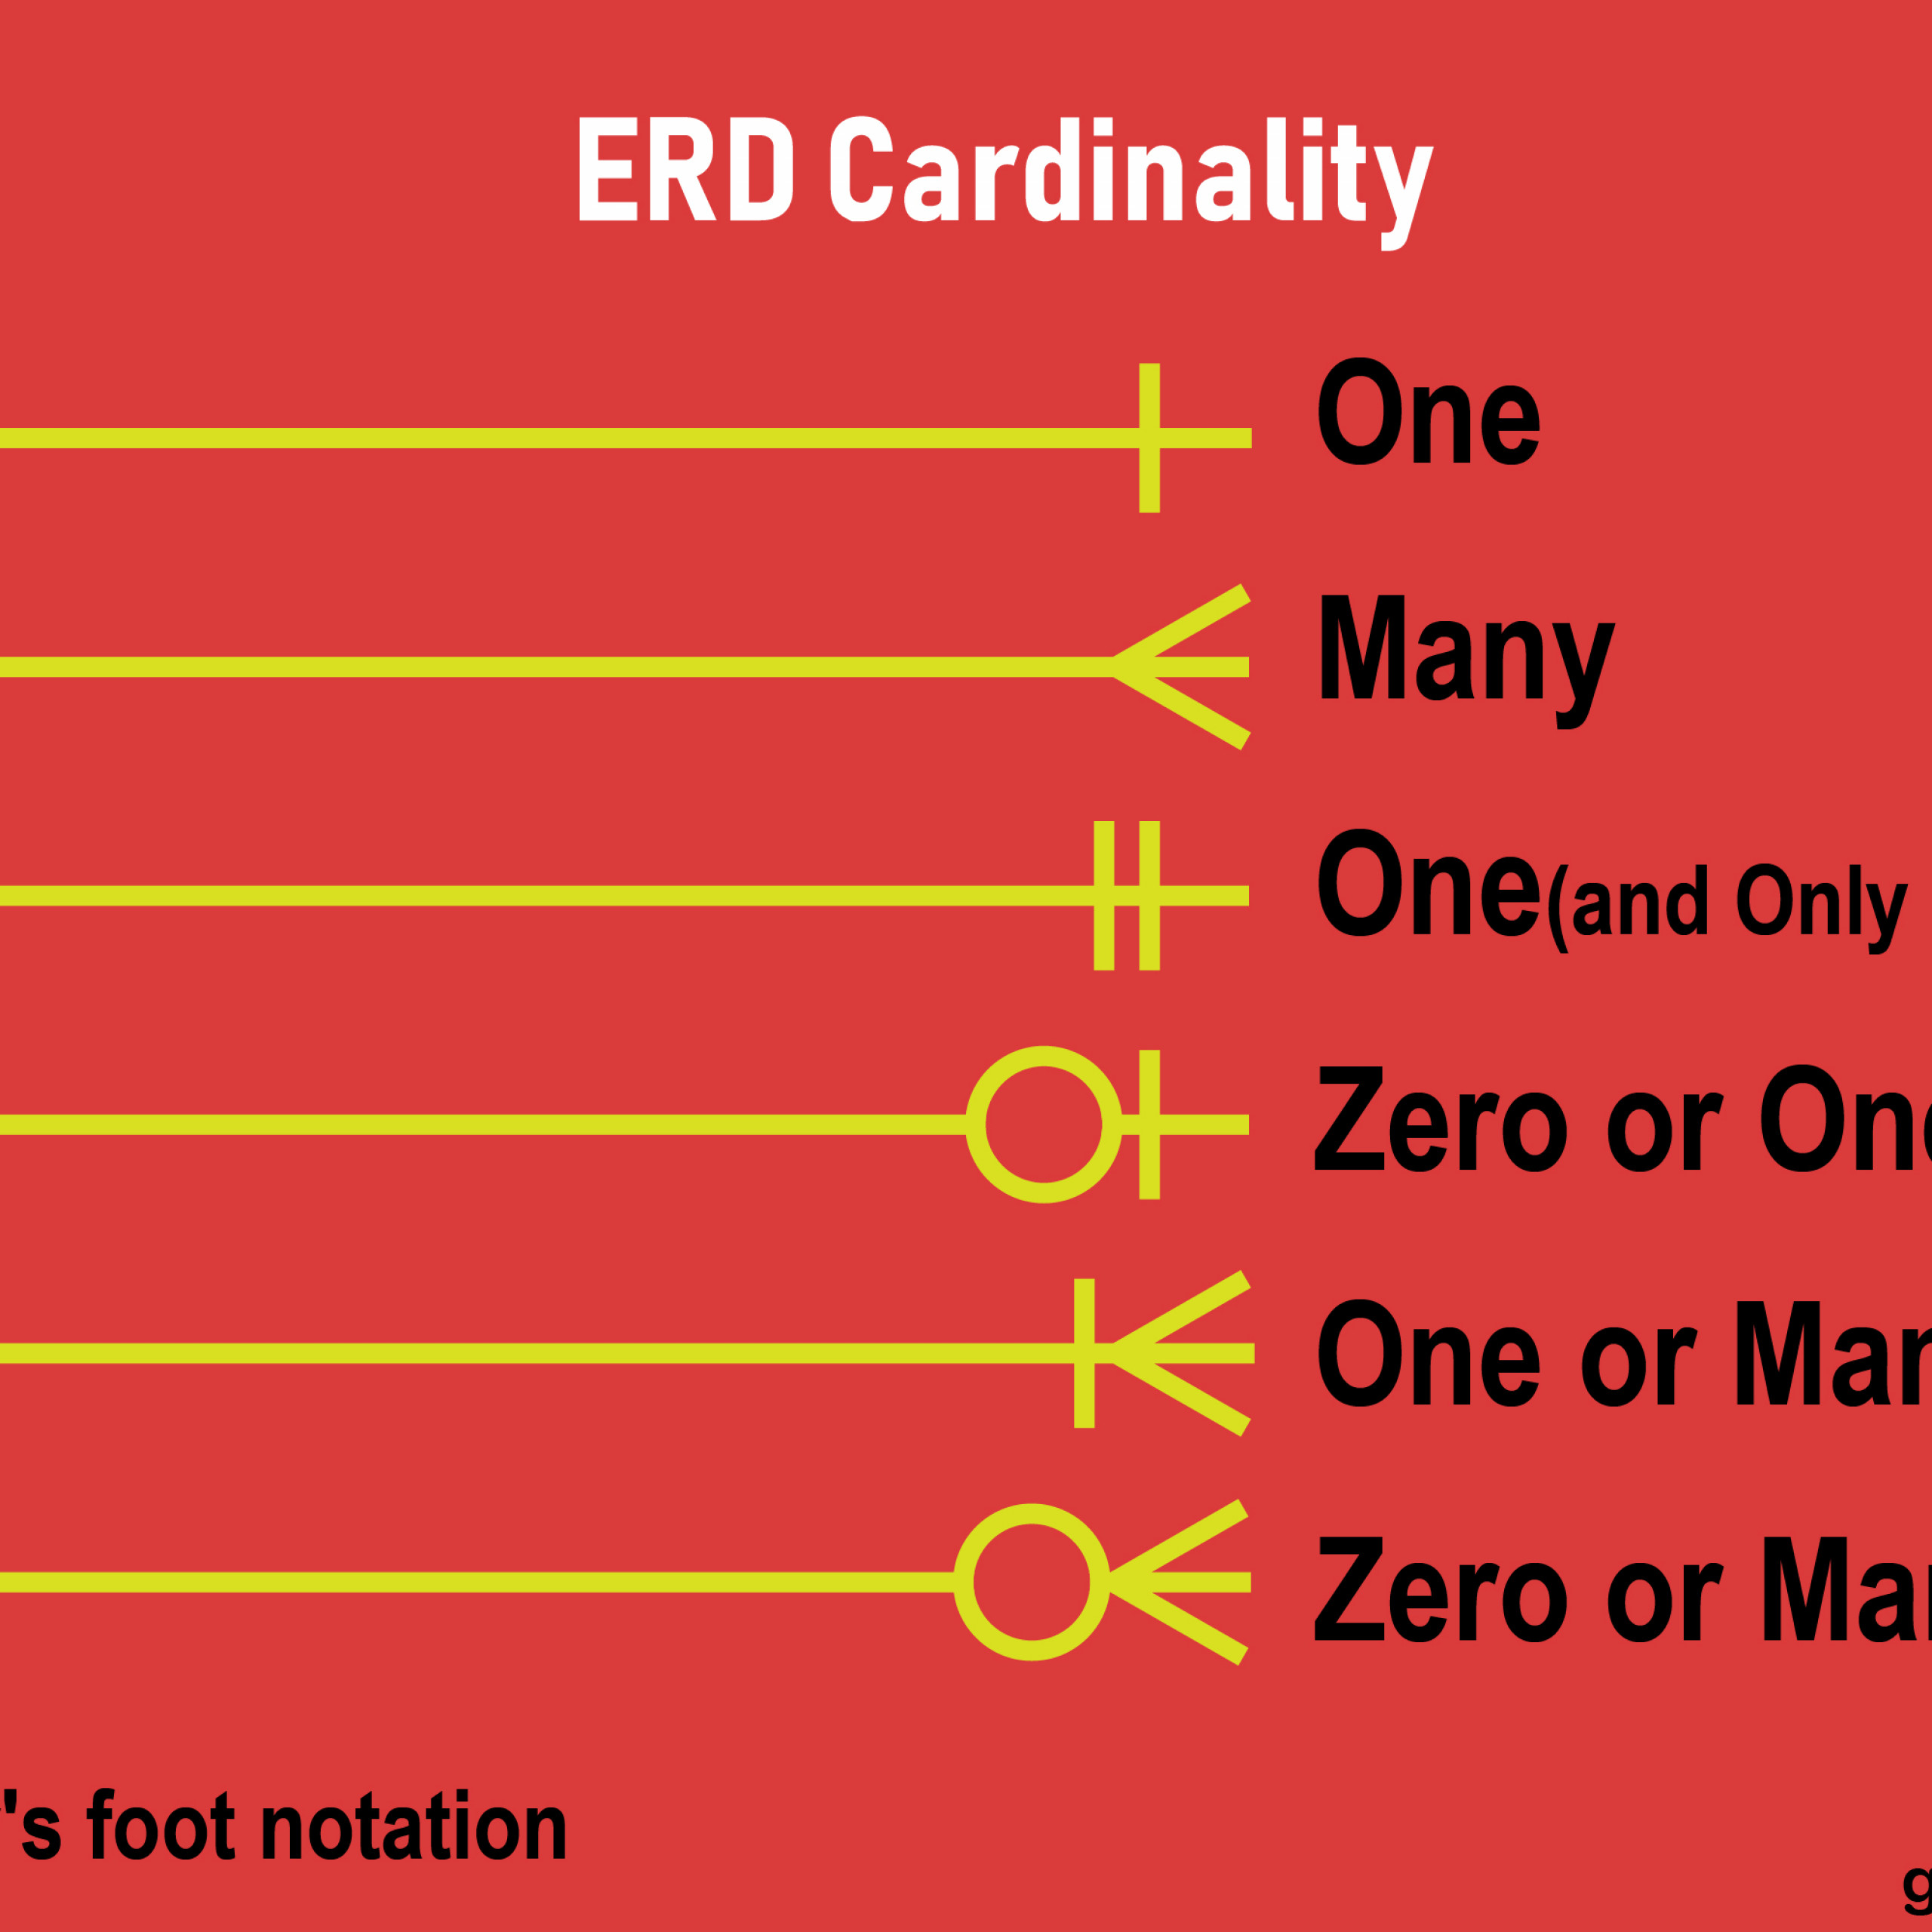 Getting Started With Entity Relationship Diagram(Erd) For throughout Erd Cardinality